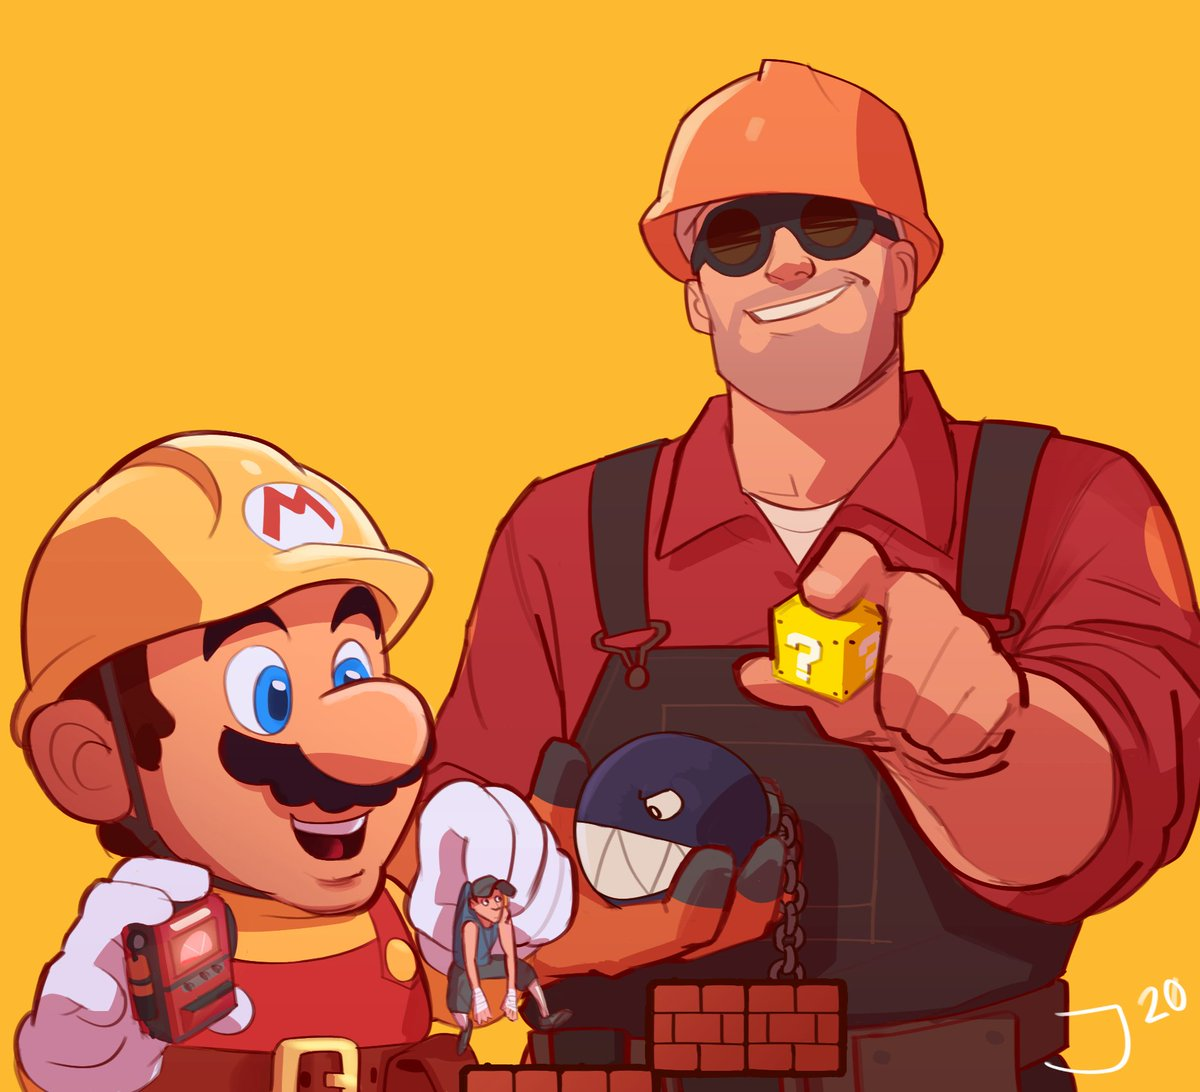 ?_block chain_chomp collared_shirt dispenser_(team_fortress) english_commentary facial_hair flapdoodlez giant goggles hardhat helmet mario super_mario_bros. mustache overalls red_shirt shirt simple_background size_difference smile super_mario_maker team_fortress_2 the_engineer the_scout yellow_background